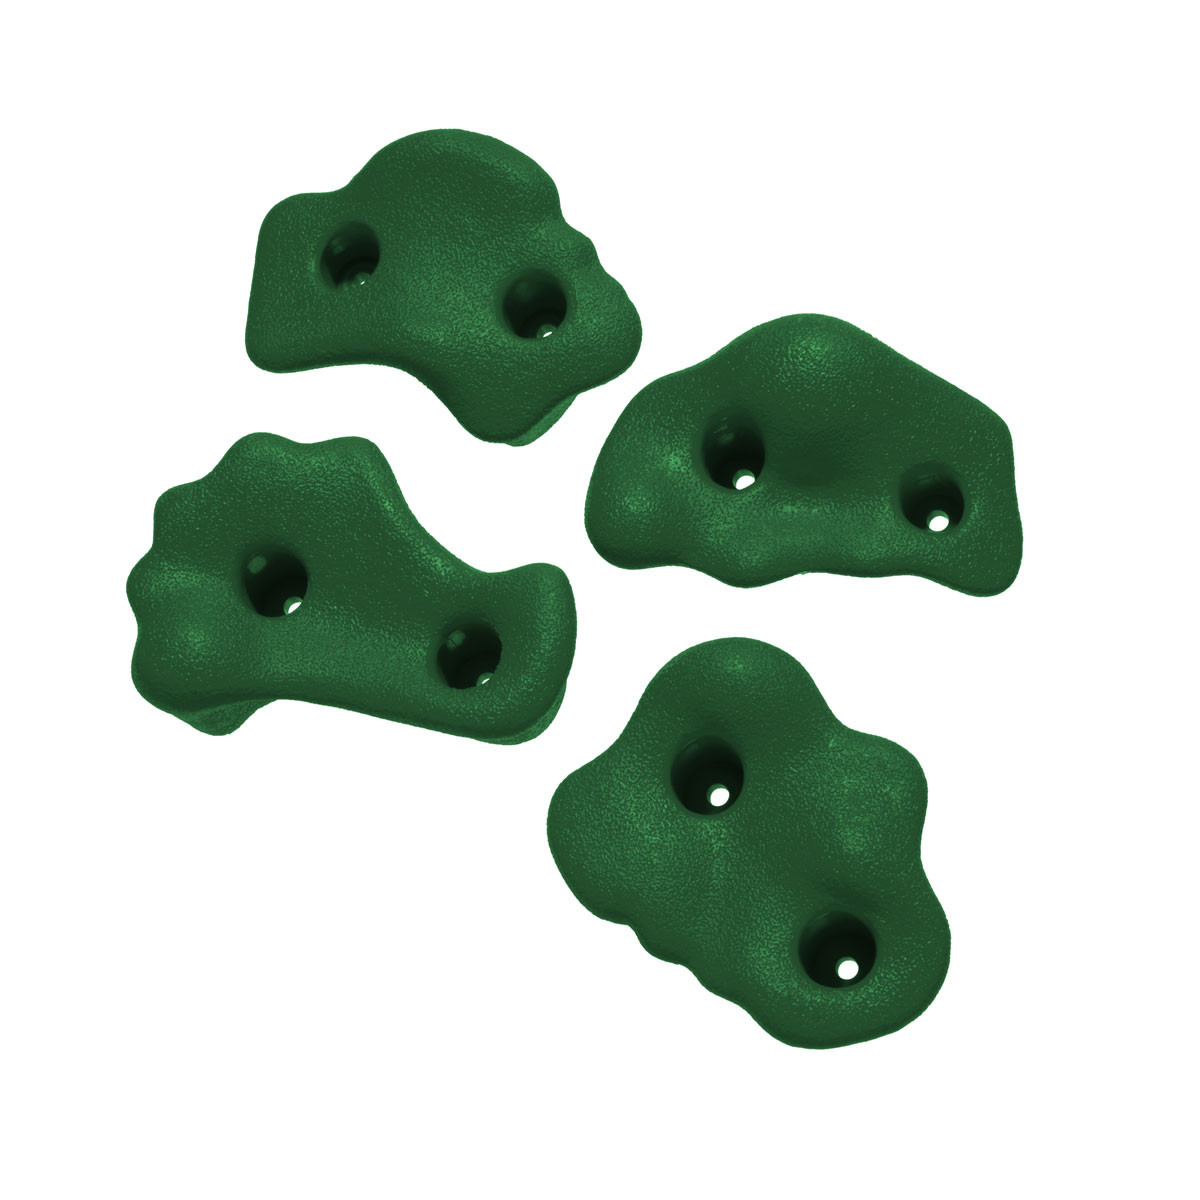 Large Climbing Rock Holds - Green